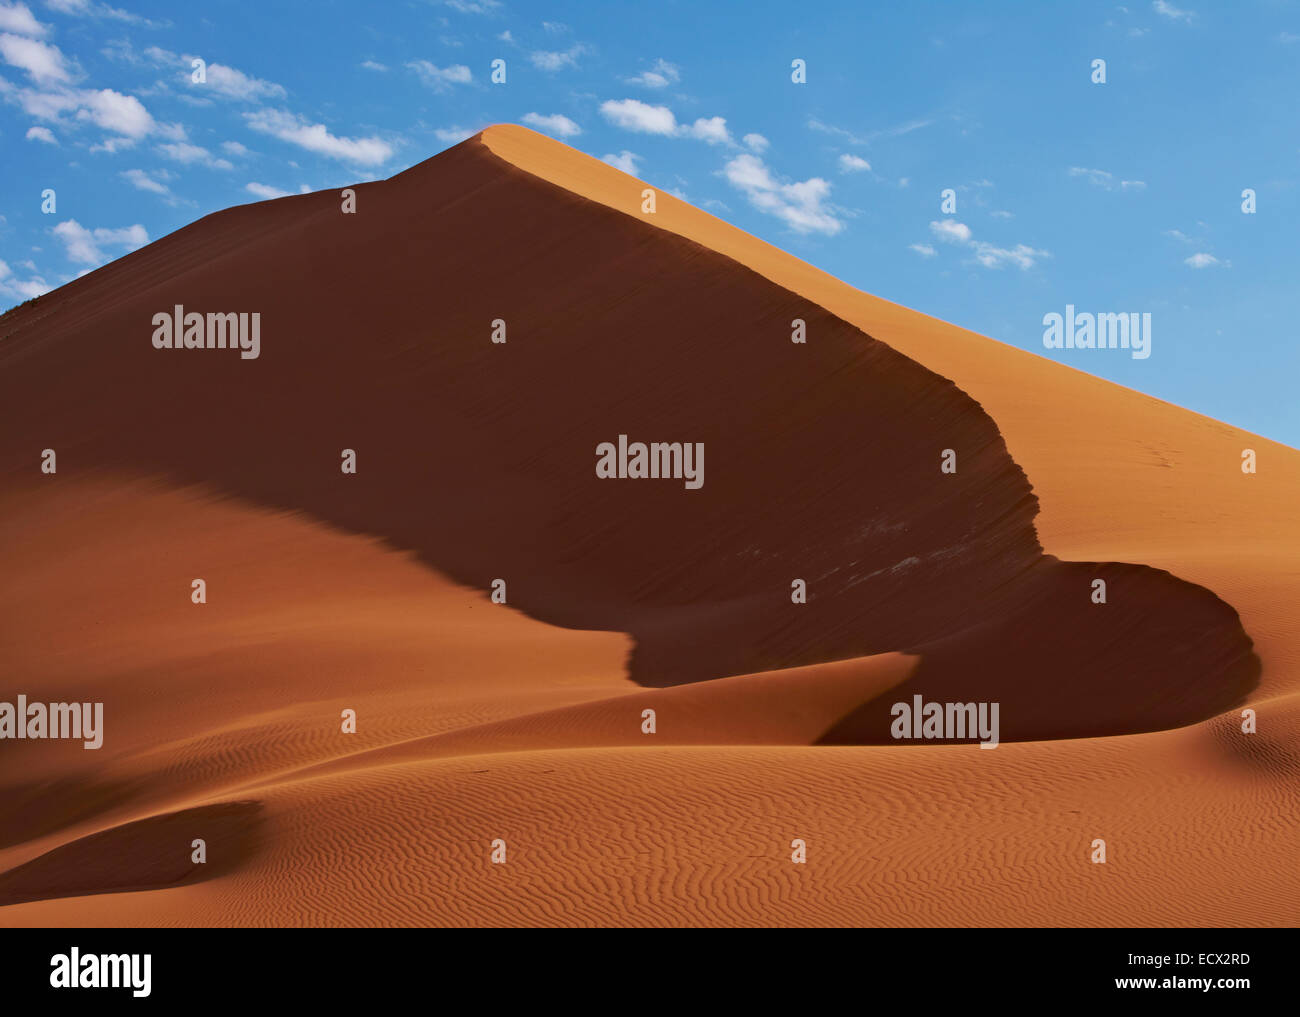 View of sand dunes in desert with blue sky and clouds in background - Stock Image